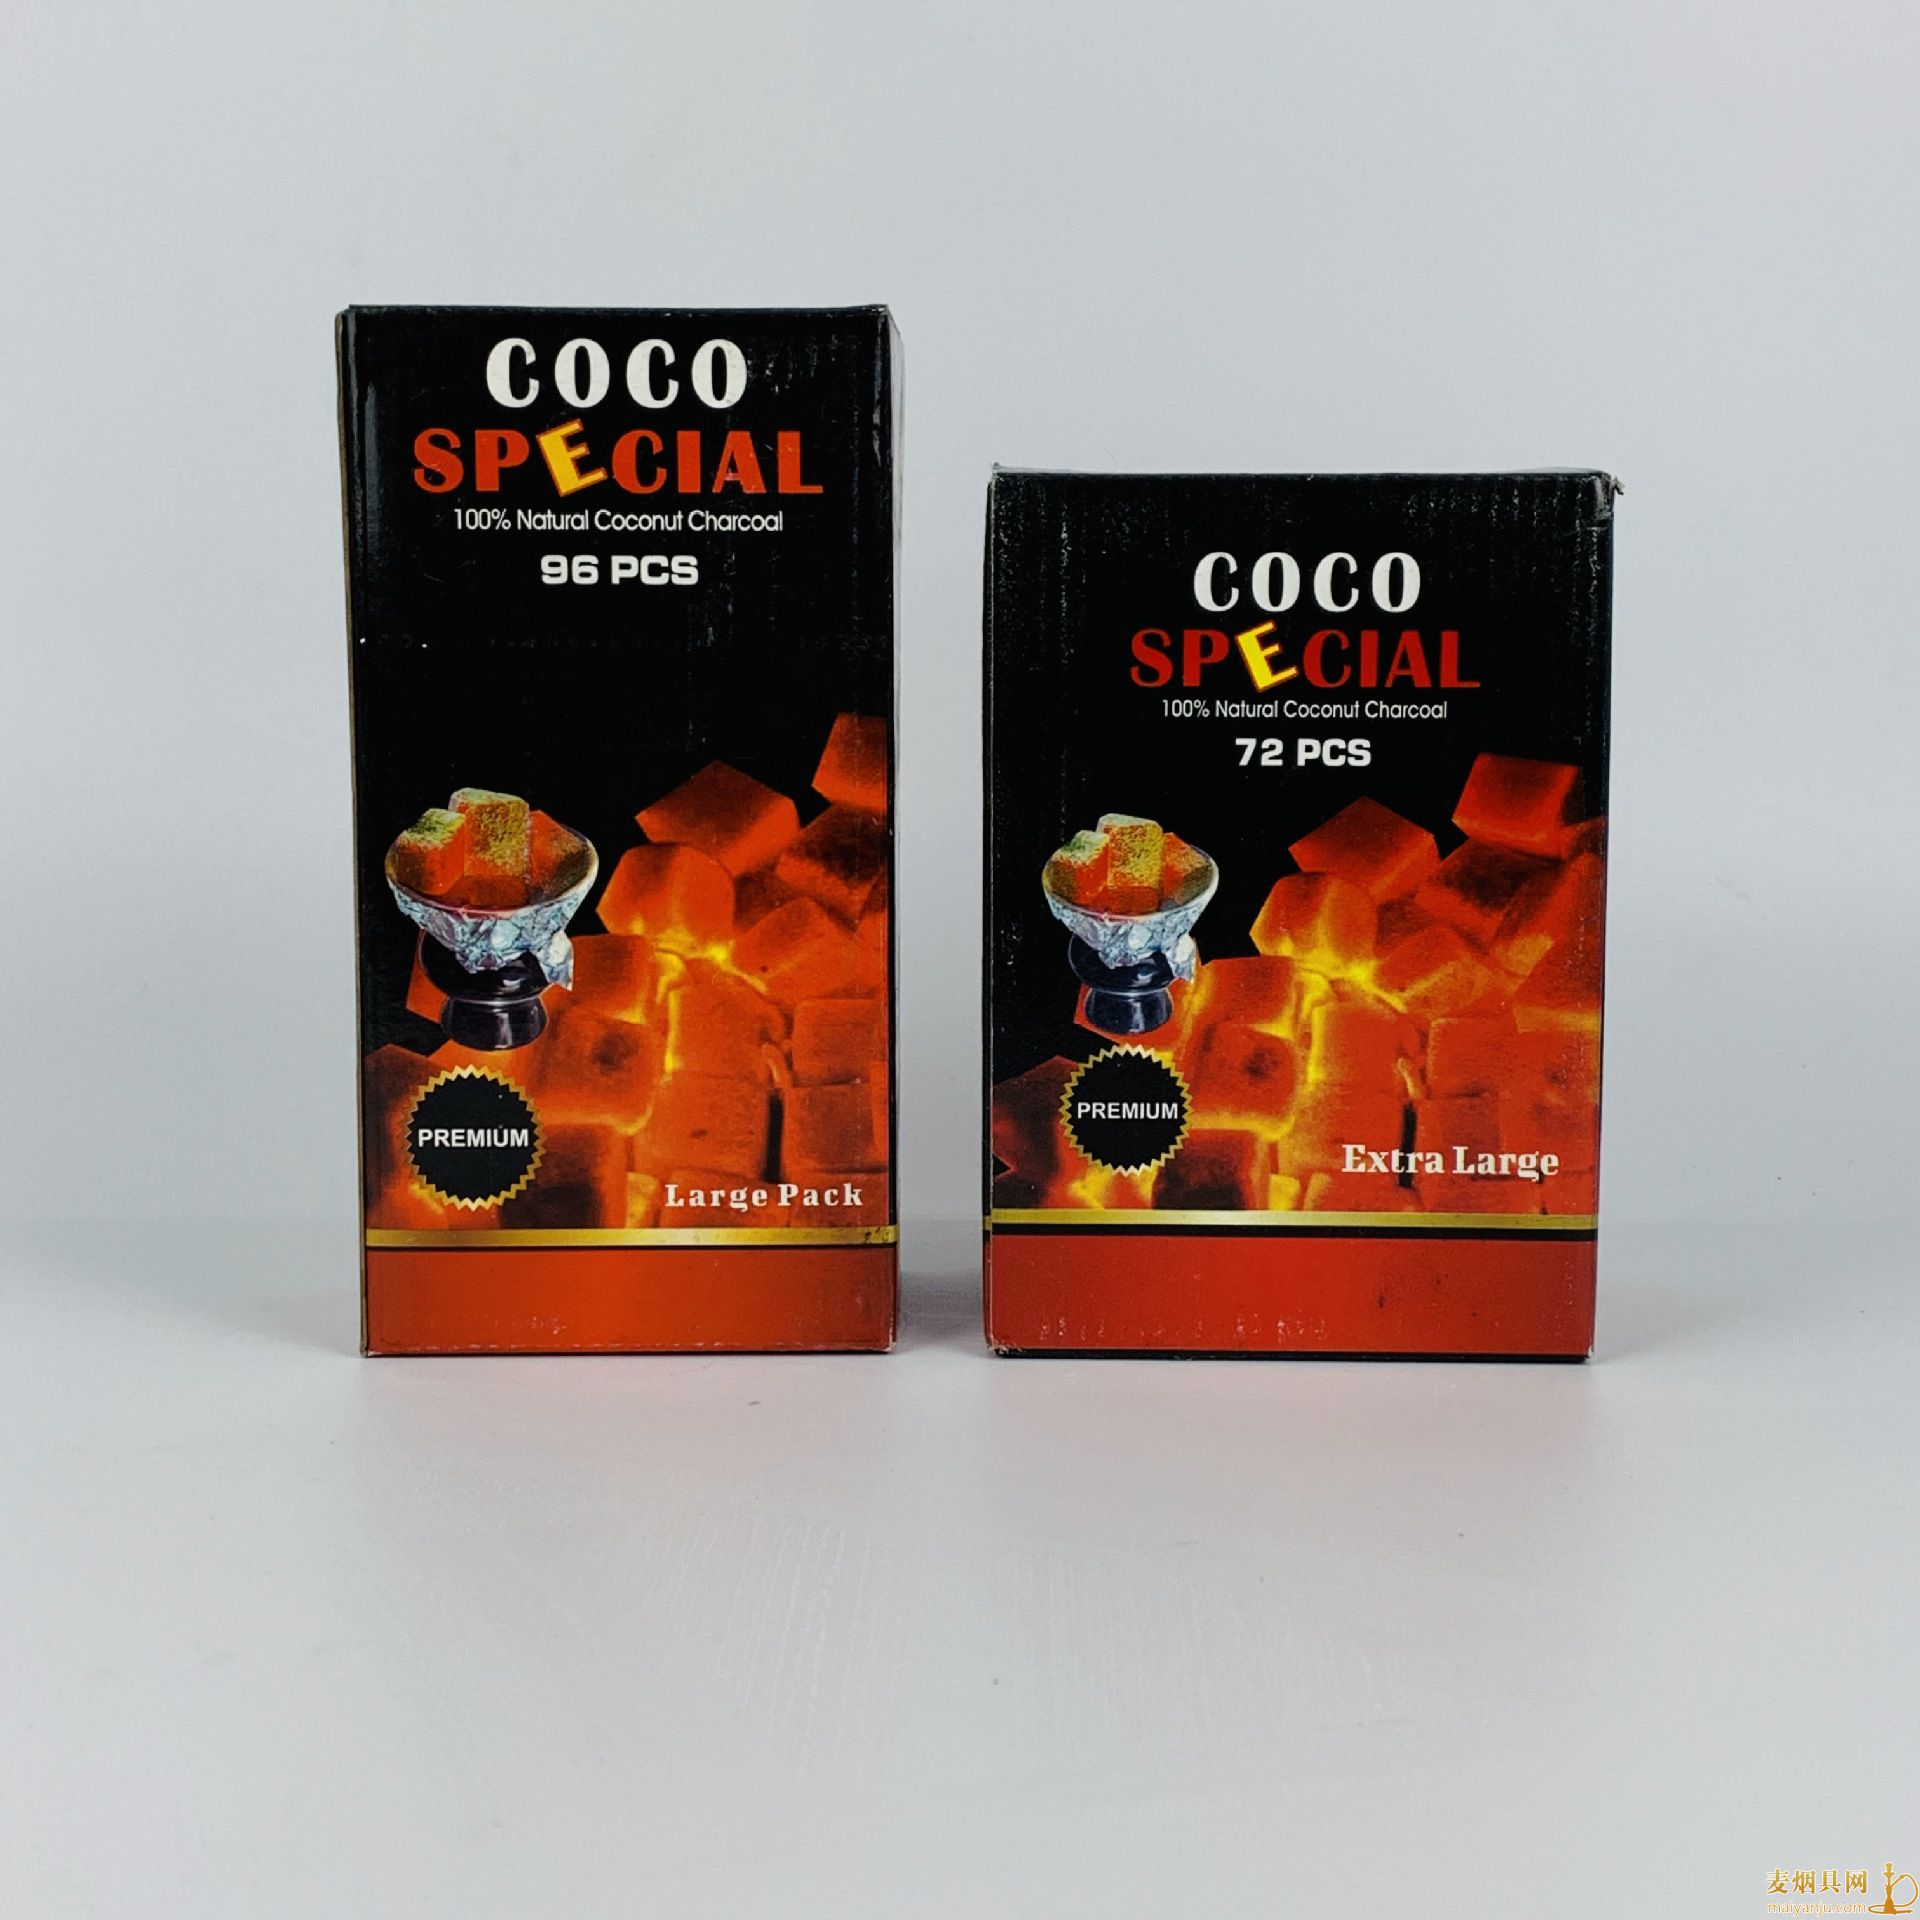 COCO SPECIALр╛©гл╪72ф╛96ф╛с║дА╫Ь©зм╪ф╛╪ш╦ЯеЗ╥╒╤Юиыг╝